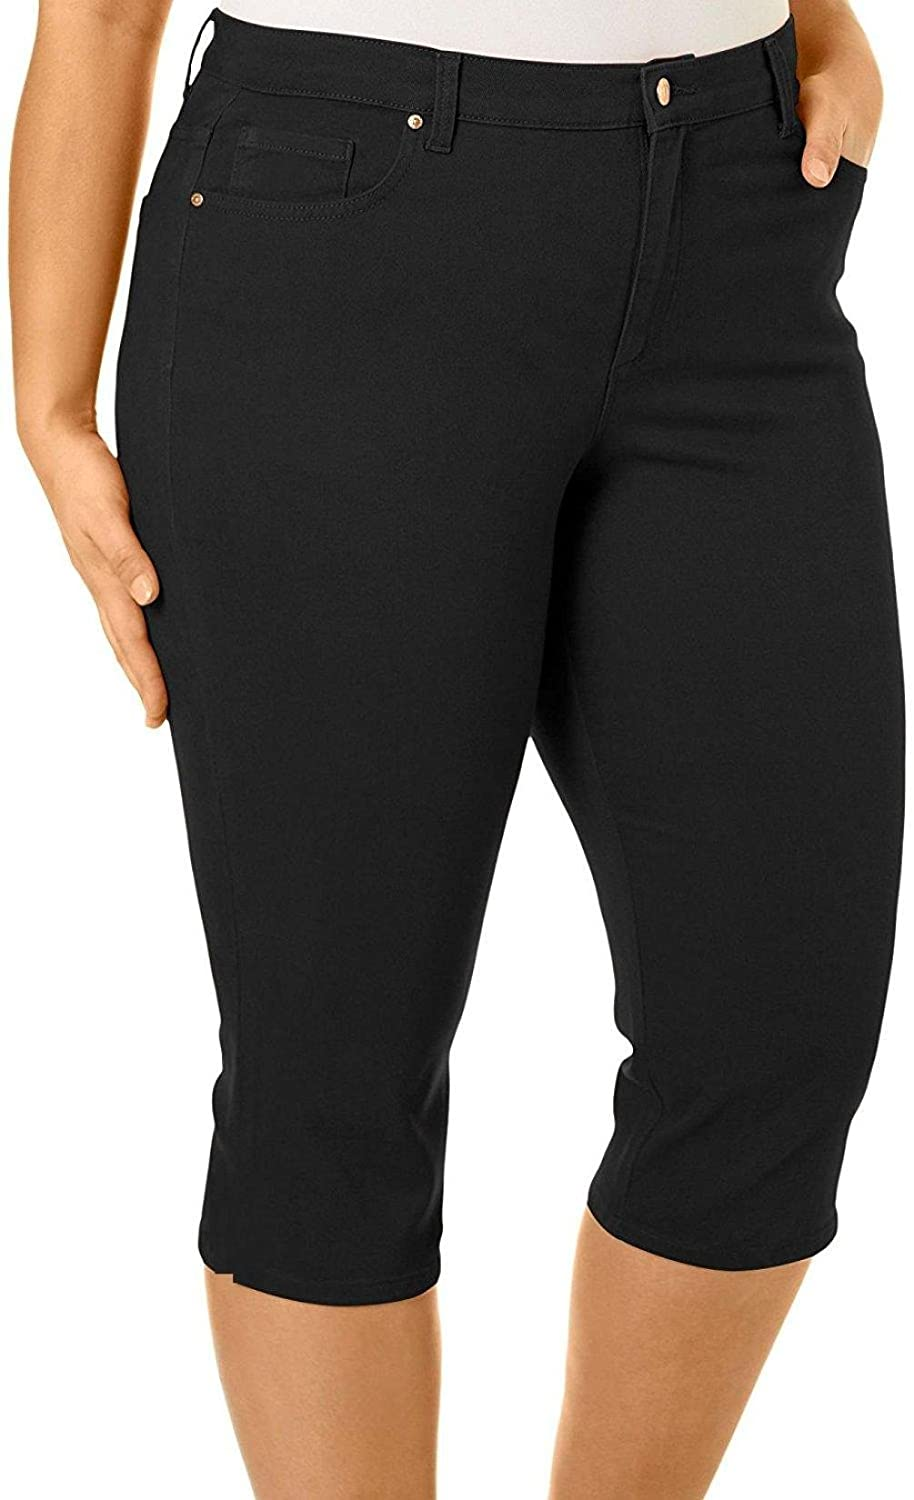 63b05b0636 These D B JEANS CAPRI are ultra comfortable and amazingly versatile. HIGH  WAIST Fabric- 76% cotton 22% POLYESTER 2% spandex Stretch   rear pockets